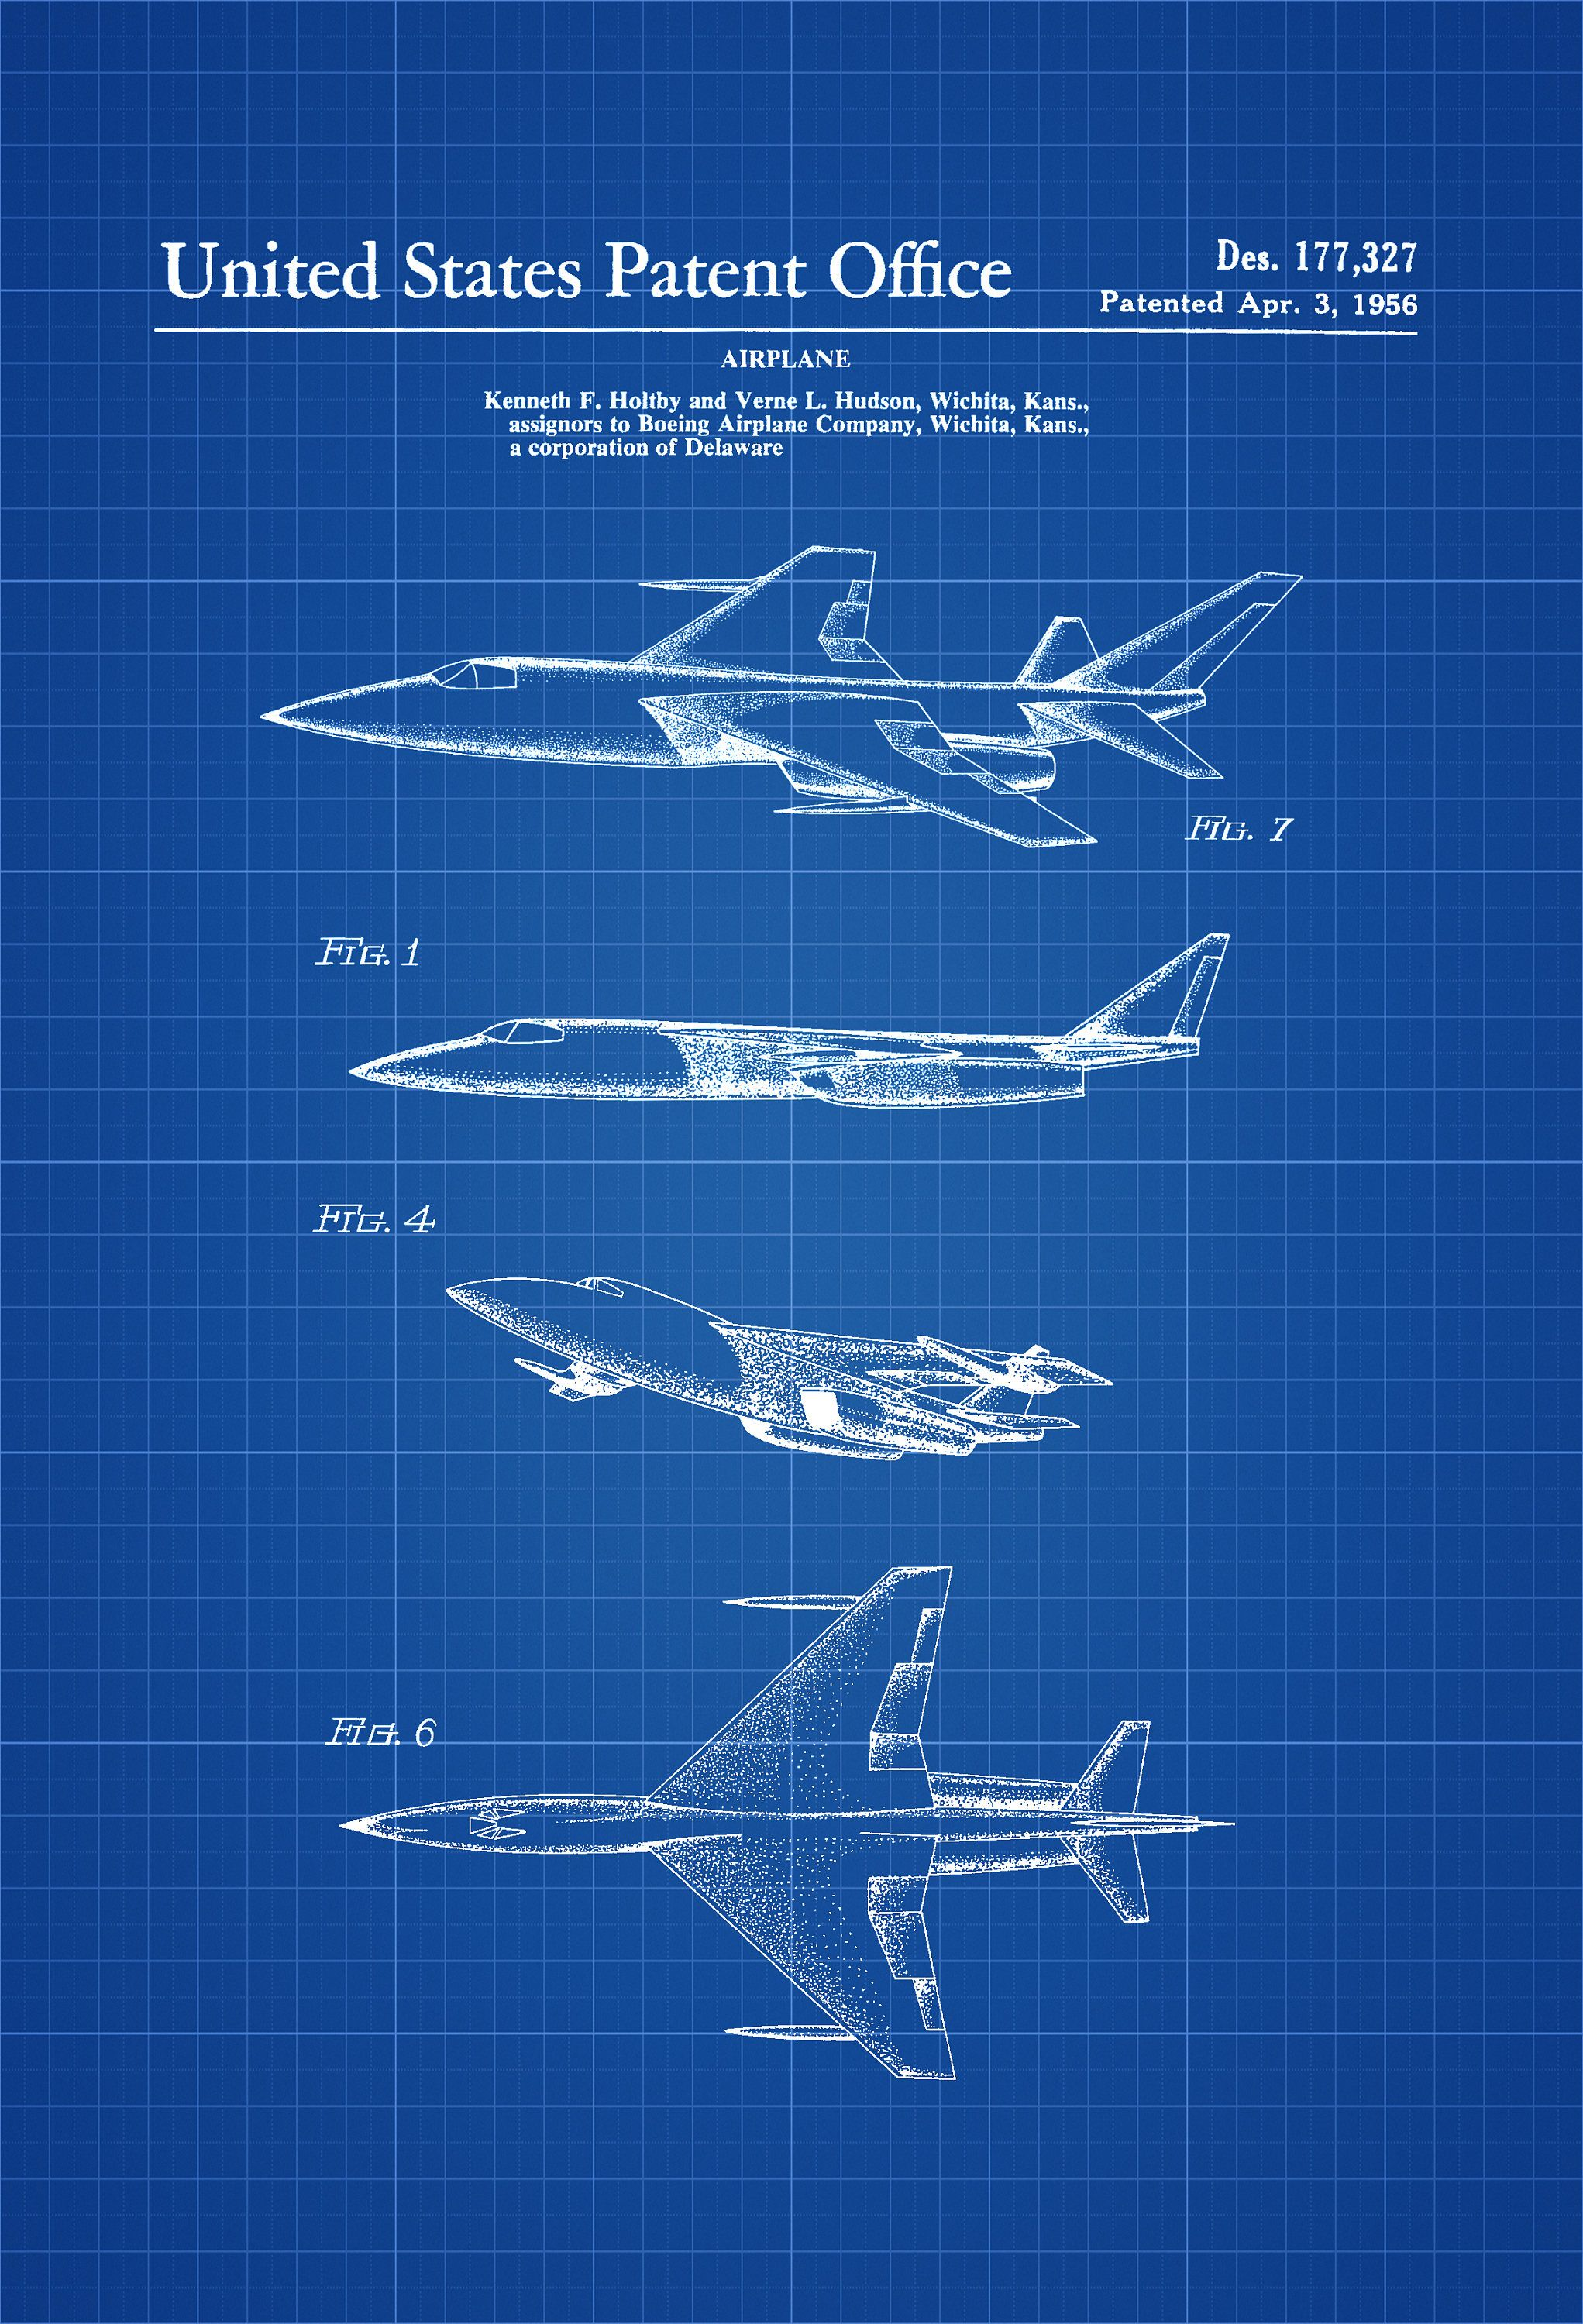 1956 boeing jet patent airplane blueprint pilot gift airplane a patent print poster of a 1956 boeing military jet aircraft the patent was issued malvernweather Images